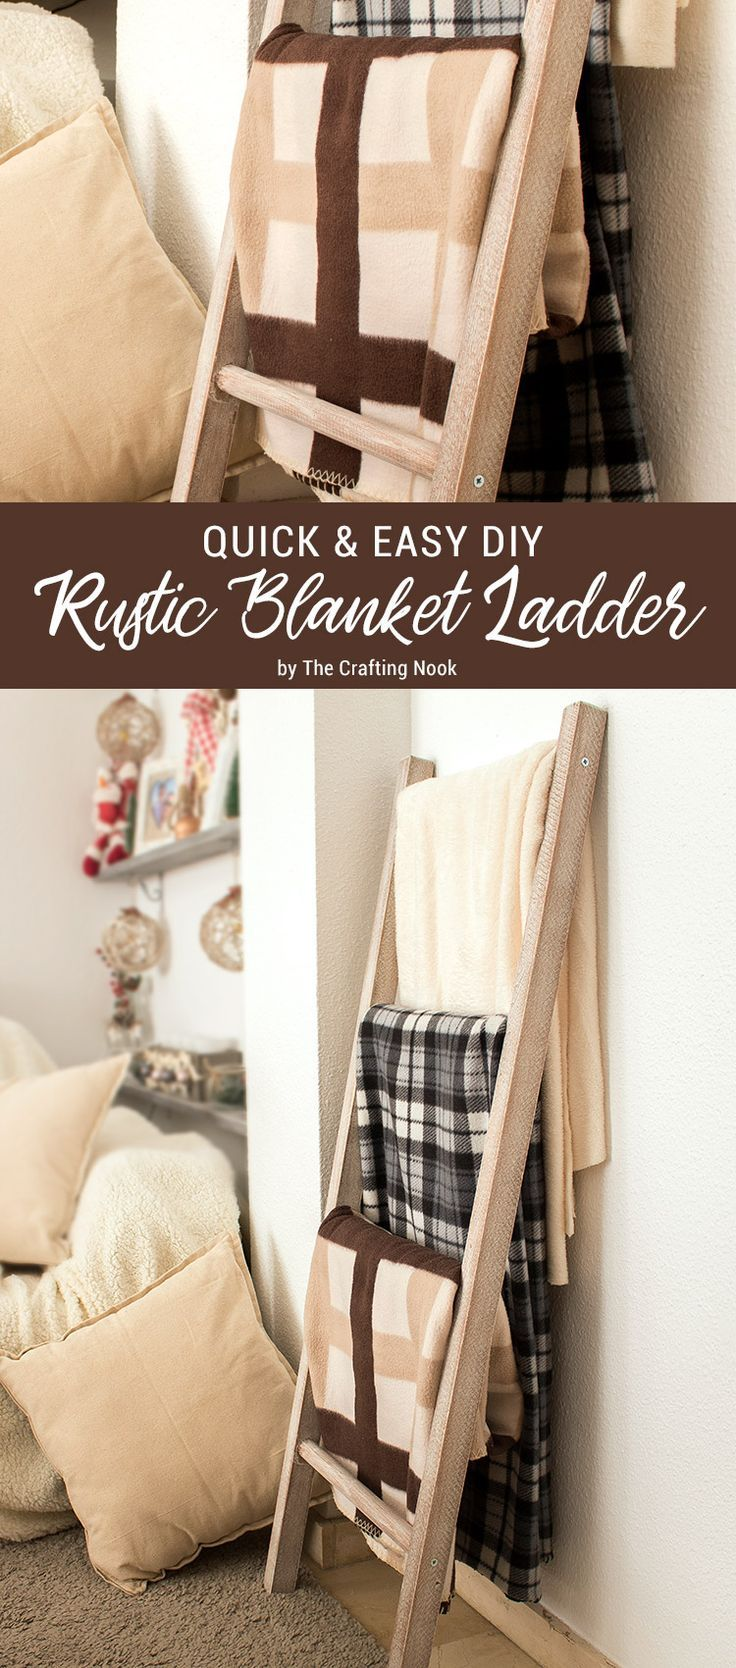 This Quick & Easy DIY Rustic Blanket Ladder is perfect for people like me that h...